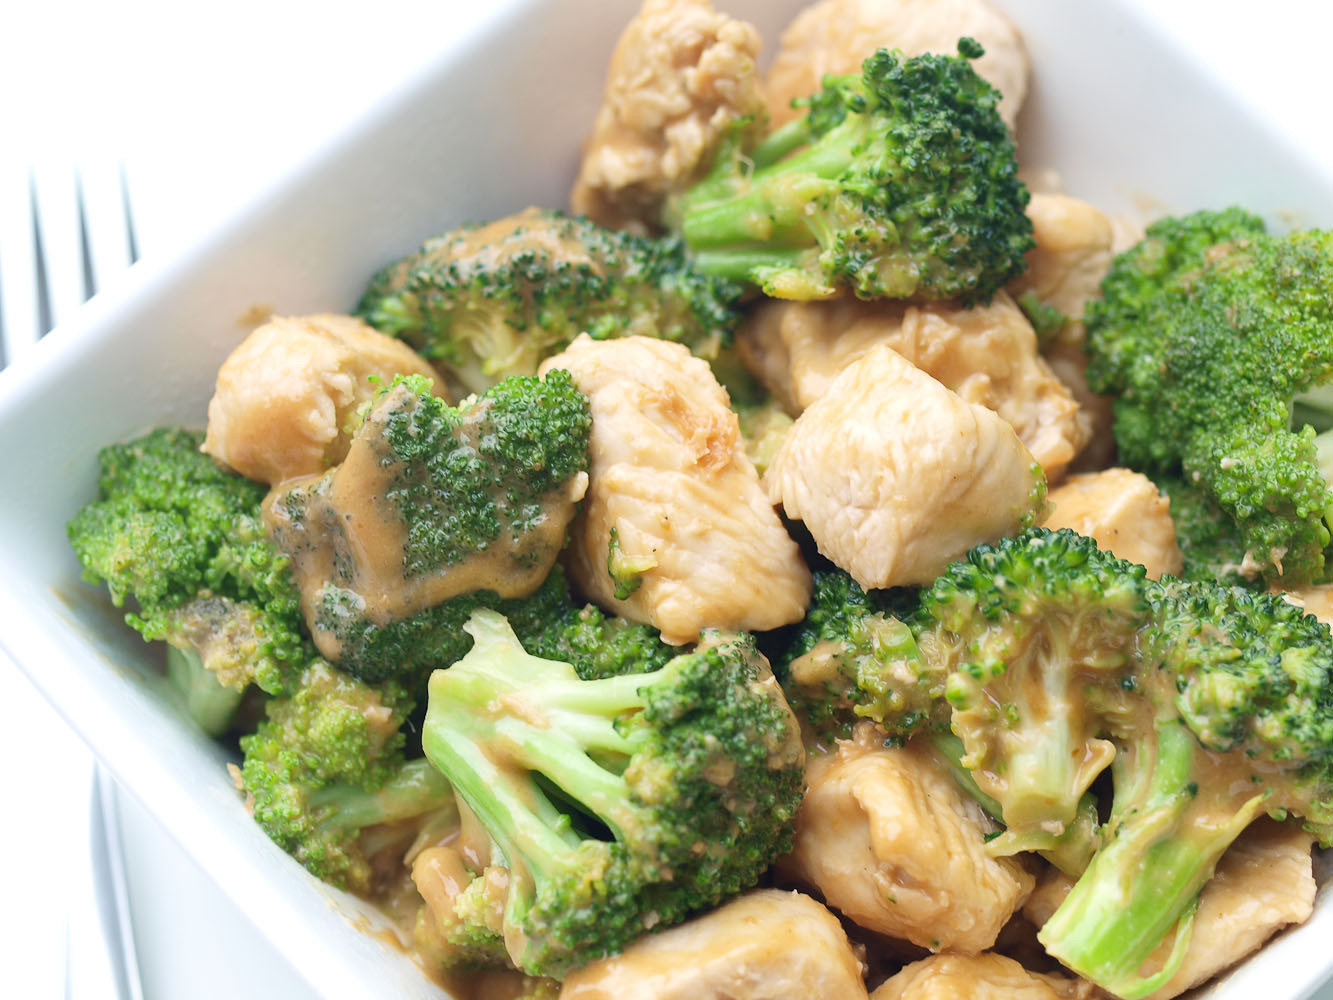 Easy Chicken And Broccoli Recipes  Easy Broccoli and Chicken with Peanut Sauce Happy